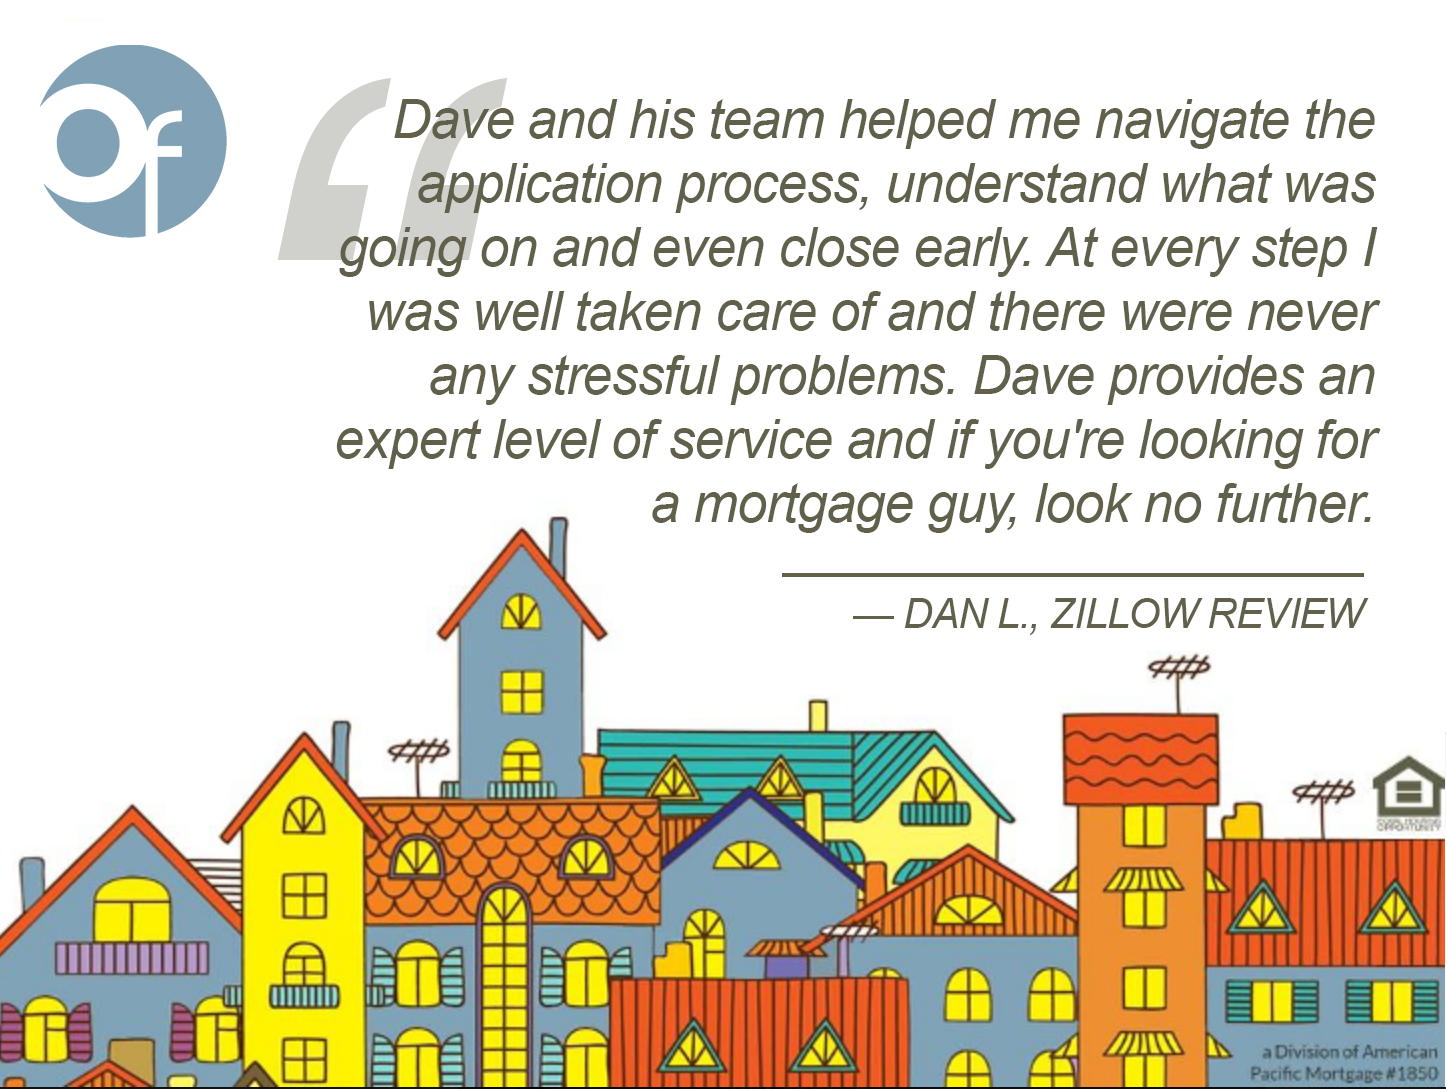 Dave and his team helped me navigate the application process, understand what was going on and even close early. At every step I was well taken care of and there were never any stressful problems. Dave [provides] an expert level of service and if you're looking for a mortgage guy, look no further.